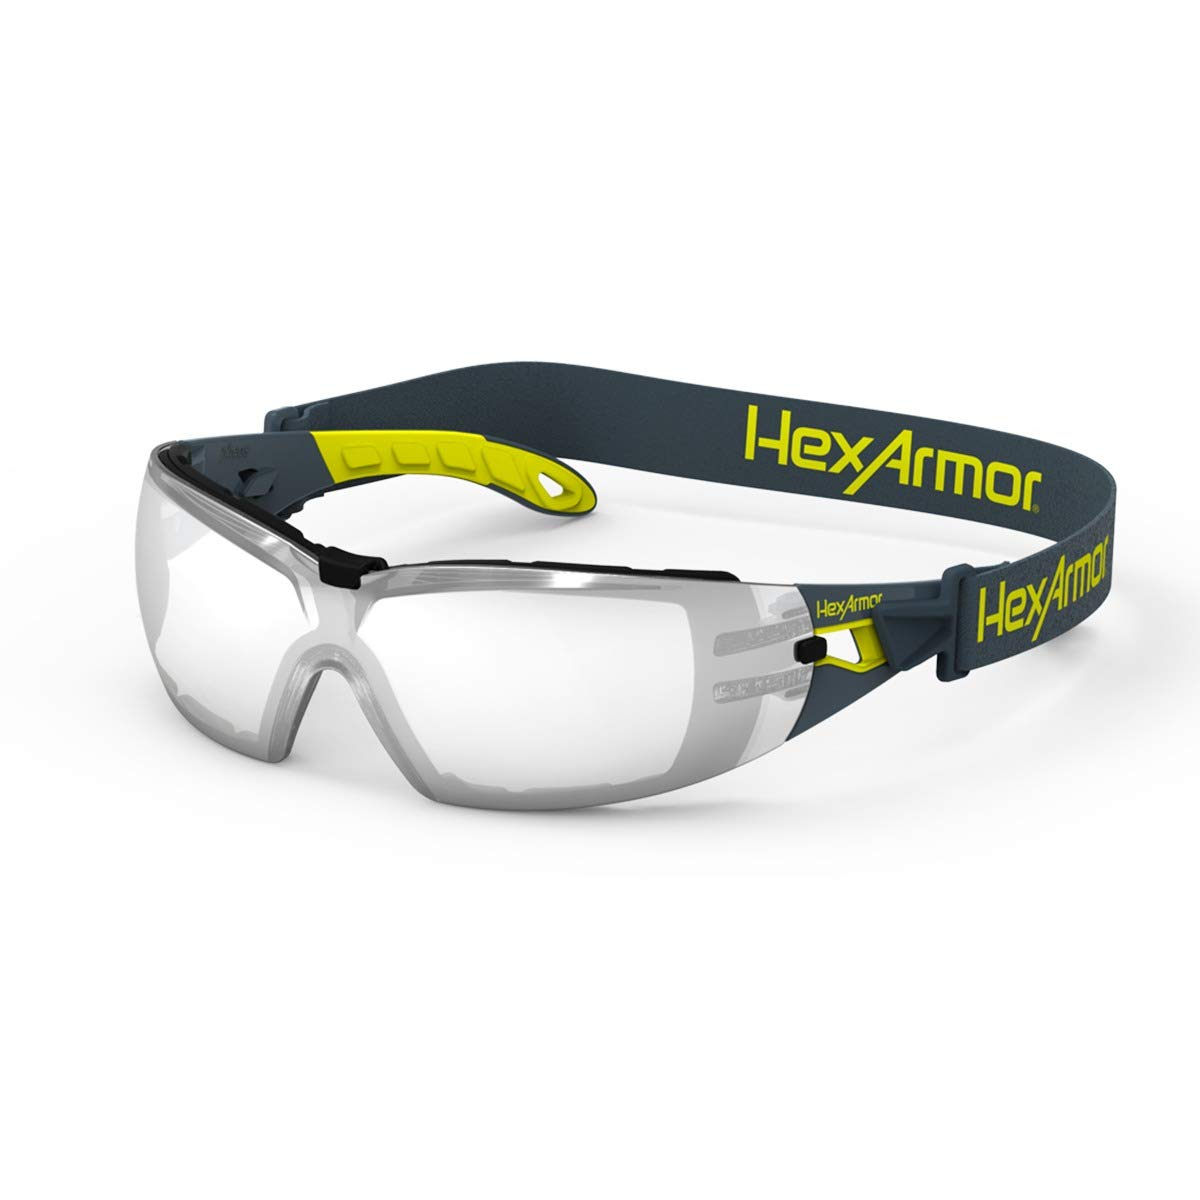 HexAmor MX200G Silver Mirror Anti Fog Spoggle Safety Glasses with Foam Gasket